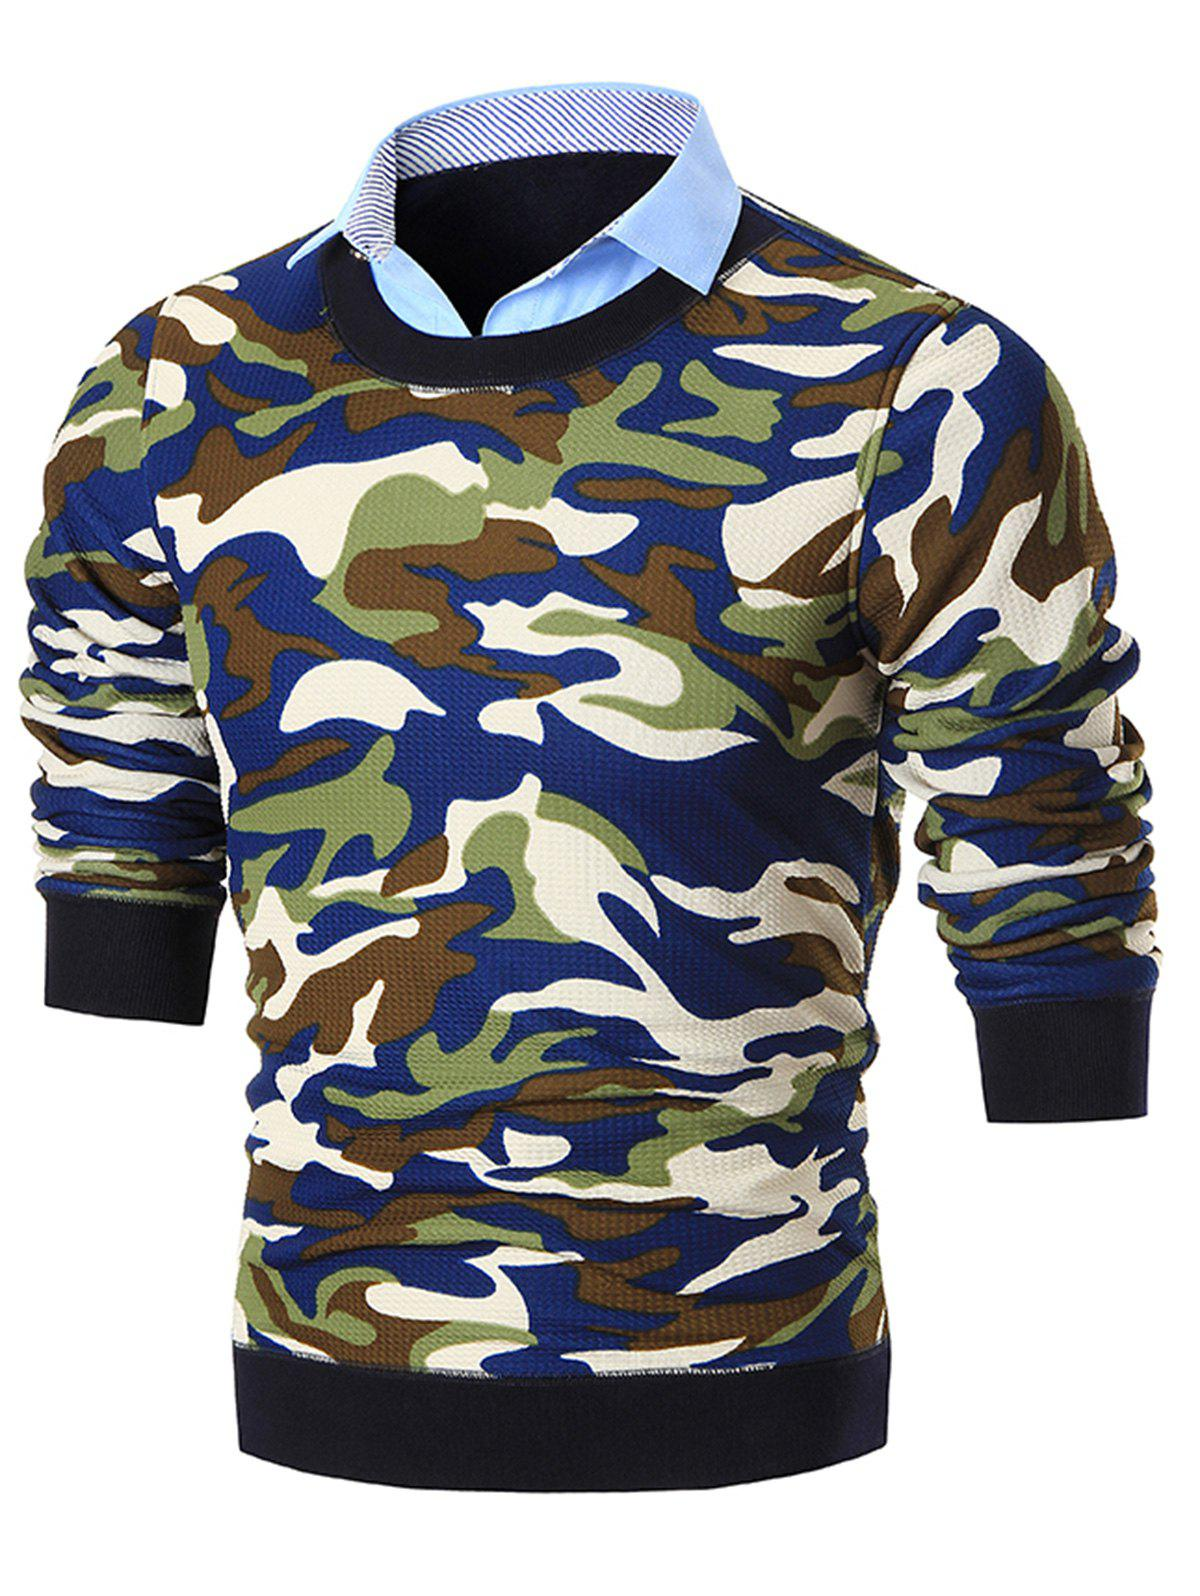 Shirt Neck Camouflage Print Pullover Sweater - BLUE 2XL